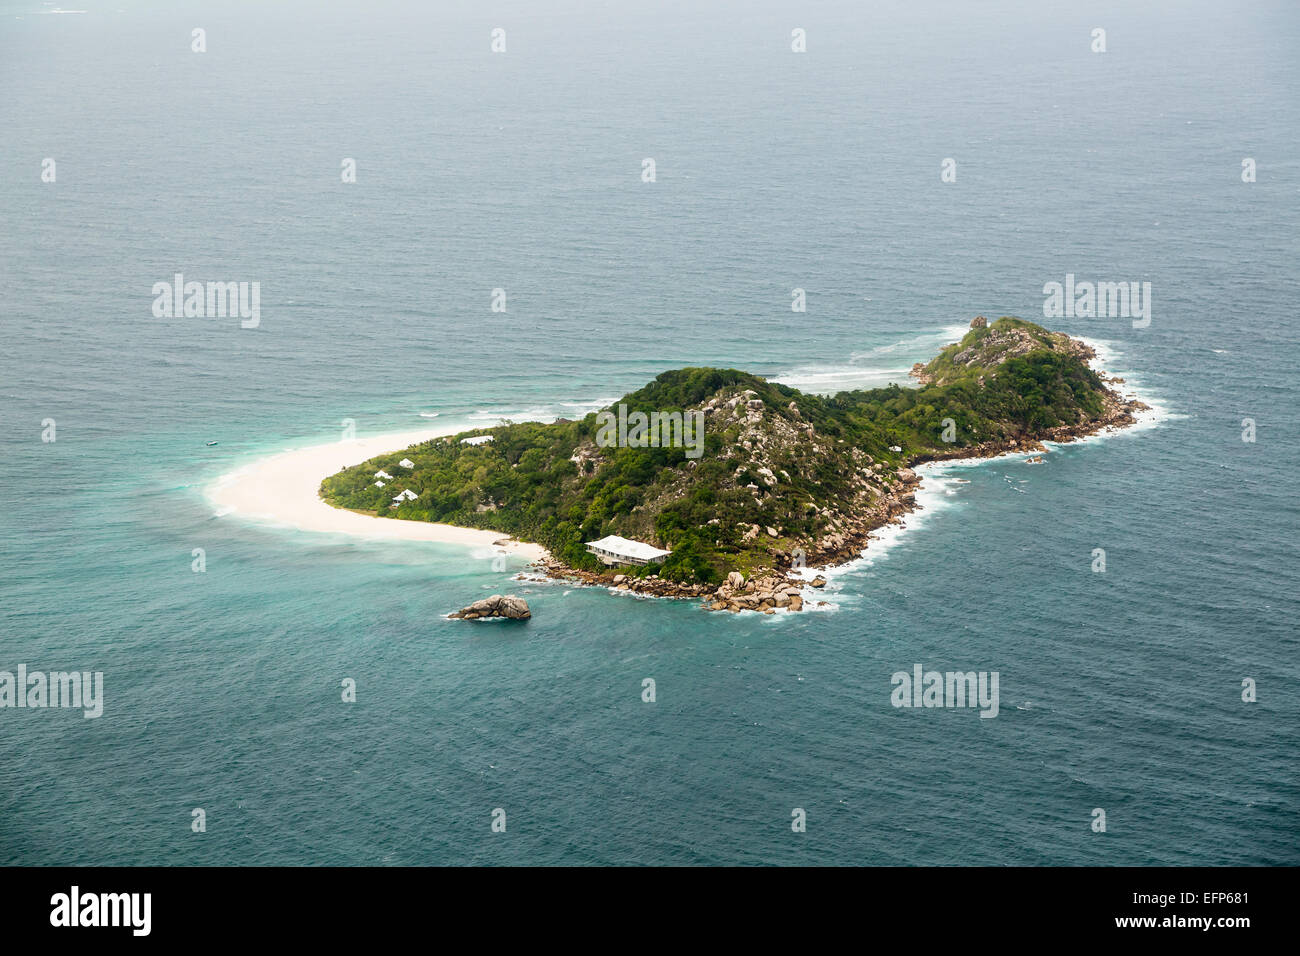 Cousine Island Aerial View, Seychelles - Stock Image